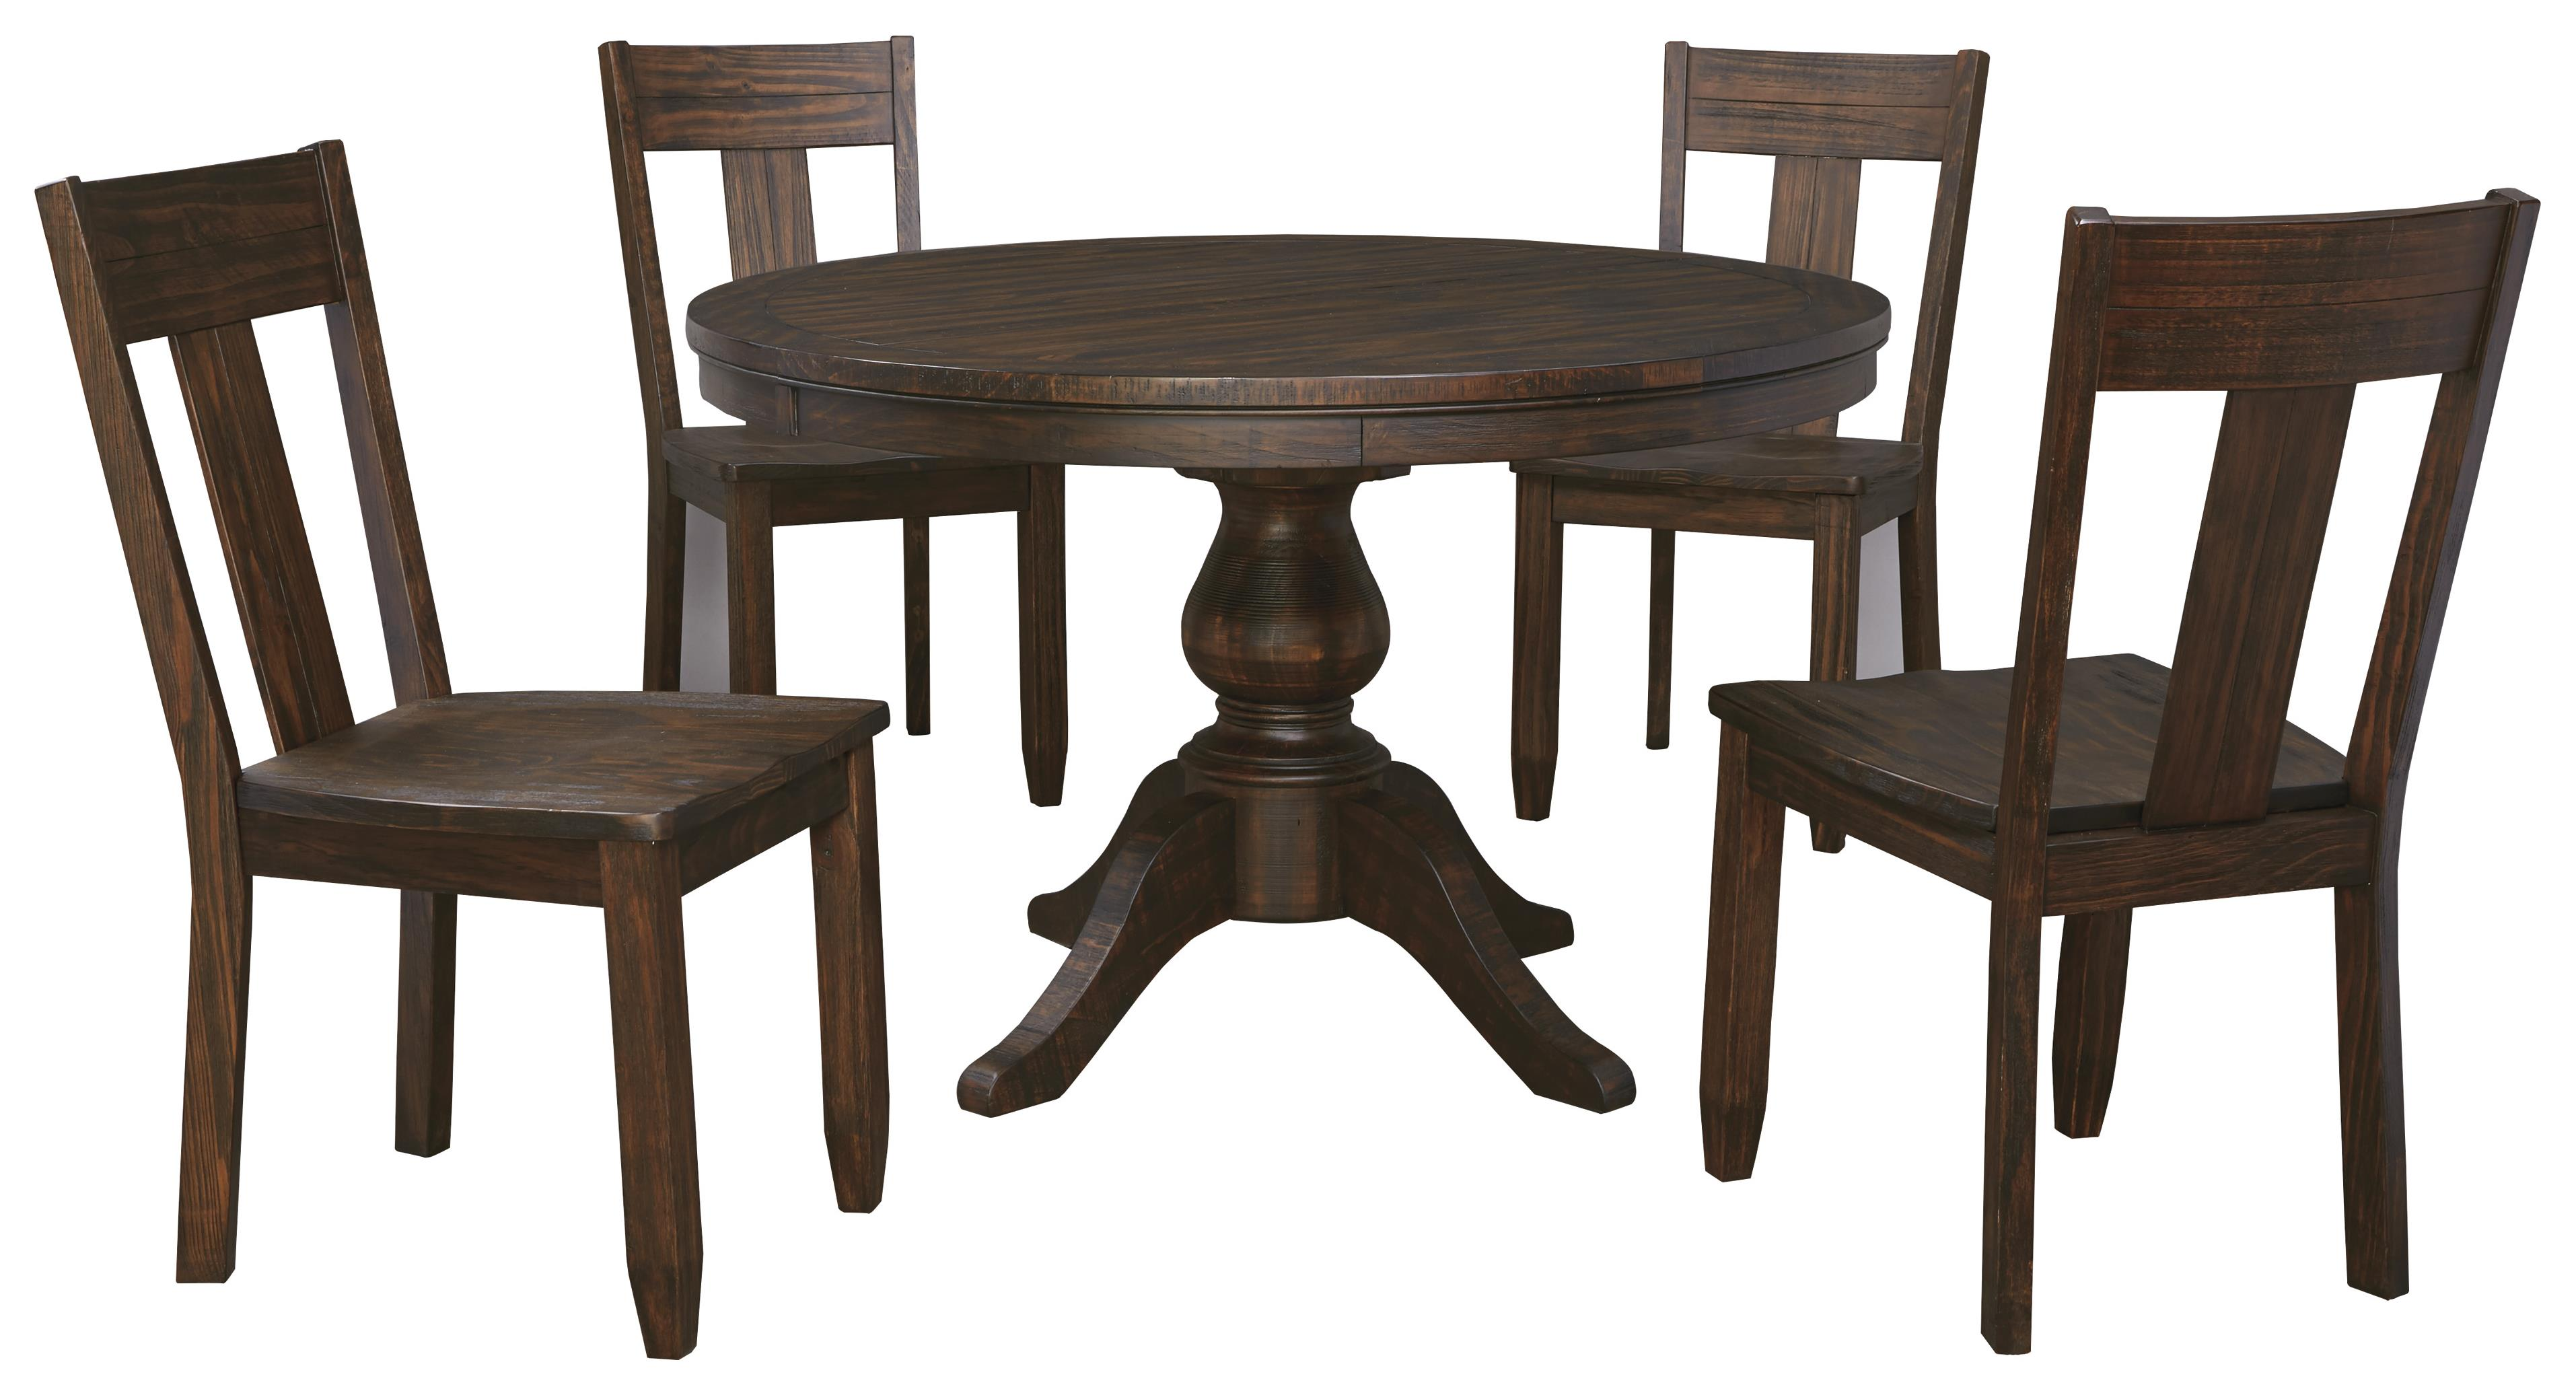 5 piece round dining table set with wood seat side chairs for Round dining table and chairs